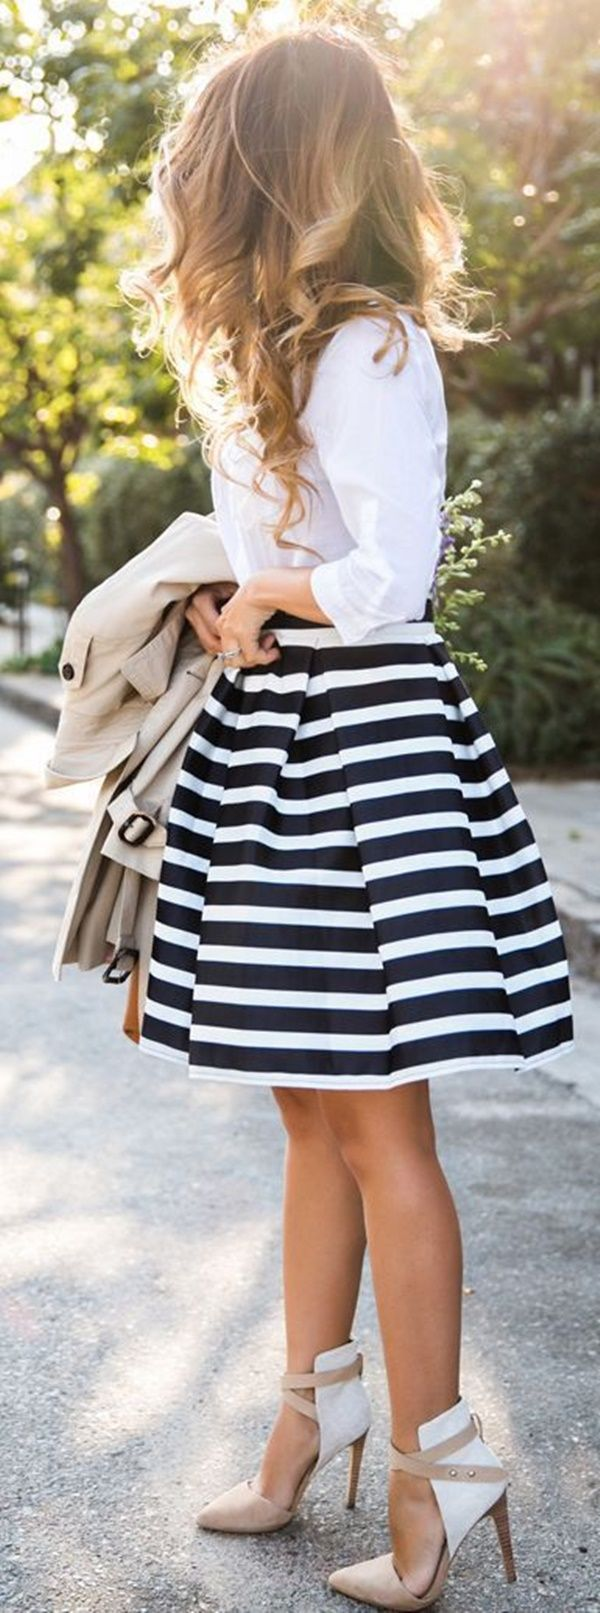 25+ best Striped skirts ideas on Pinterest | Striped skirt outfits ...